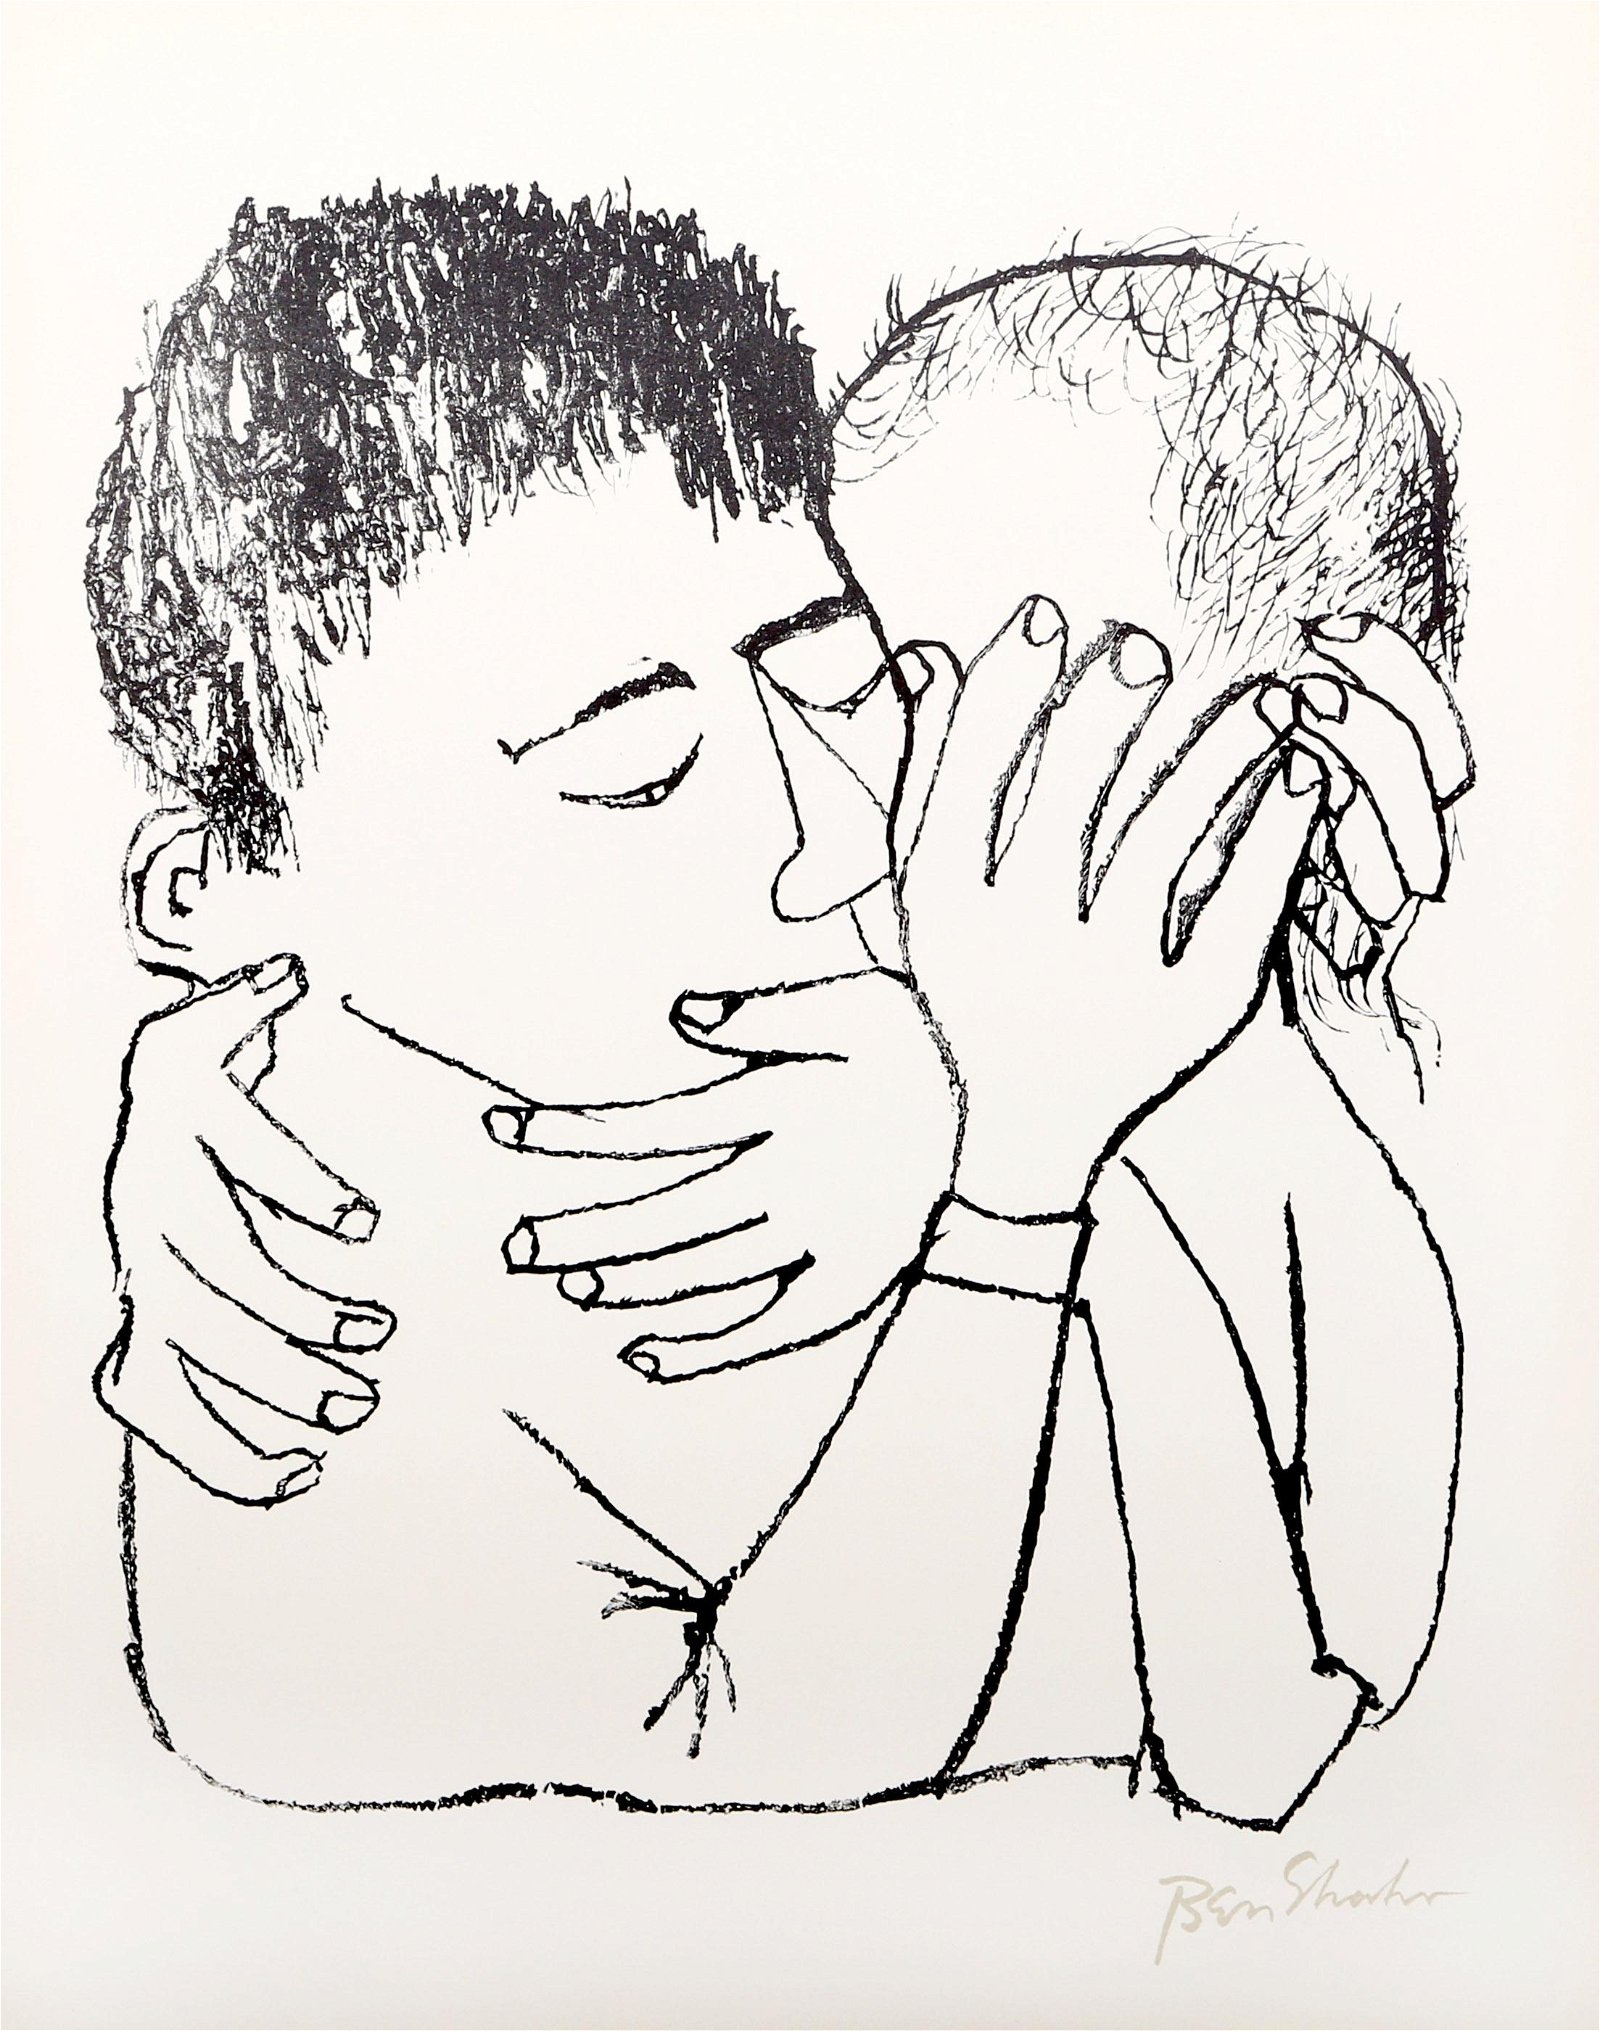 Ben Shahn, Memories of Many Nights of Love, Lithograph